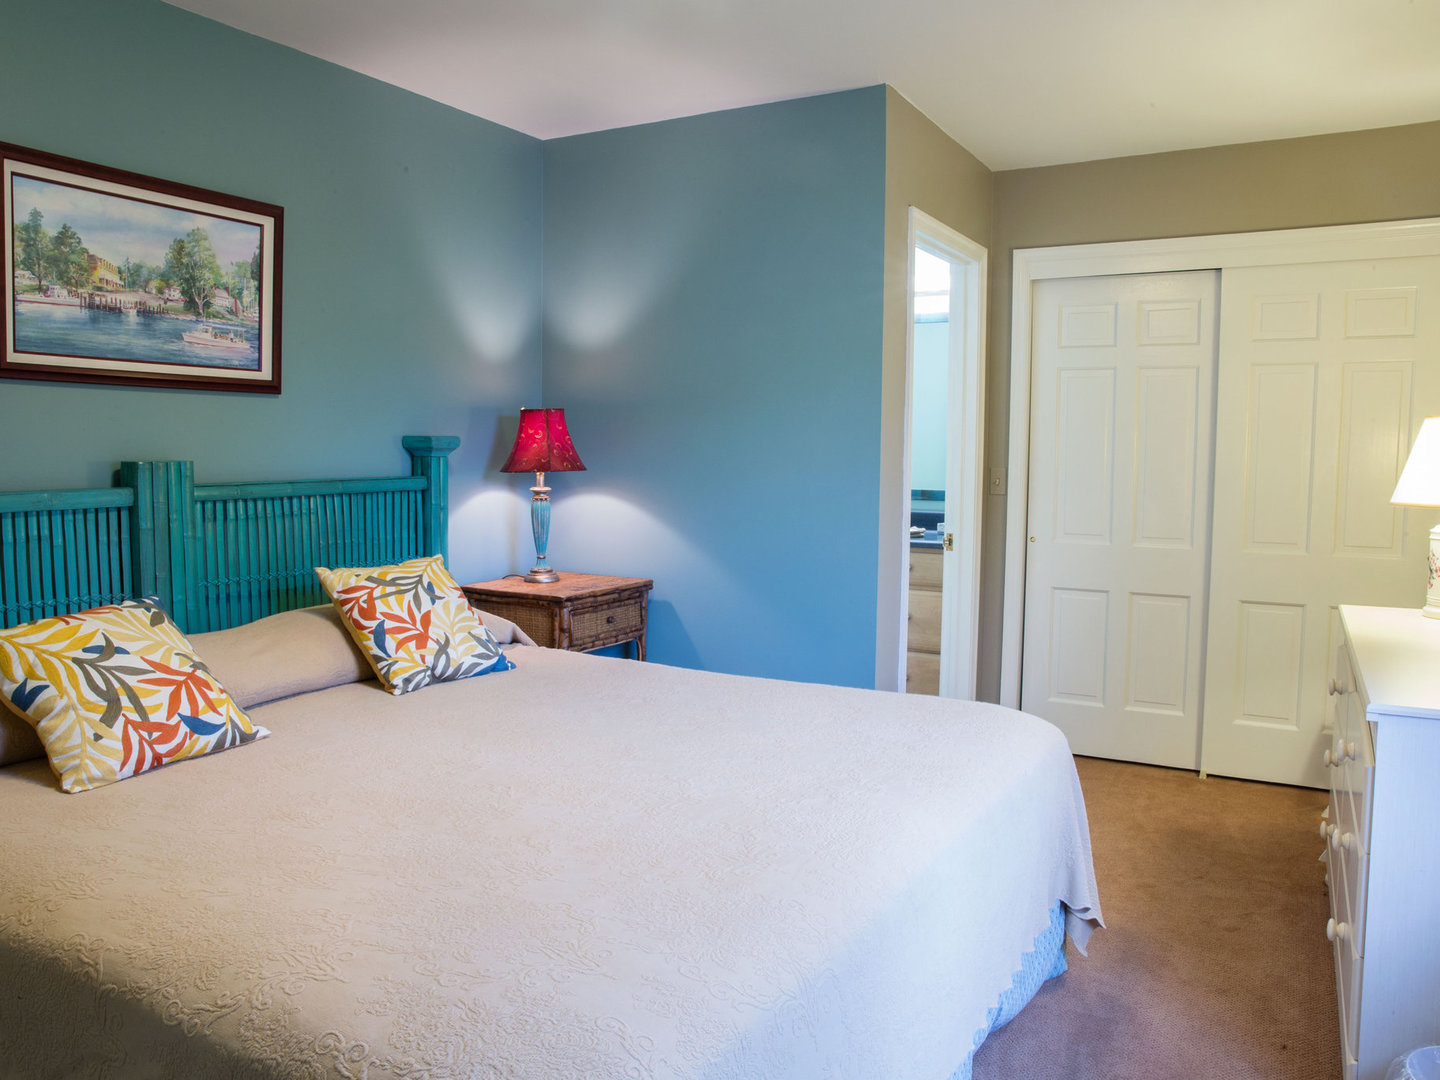 A bedroom with a bed in a room at Sandaway Suites & Beach.